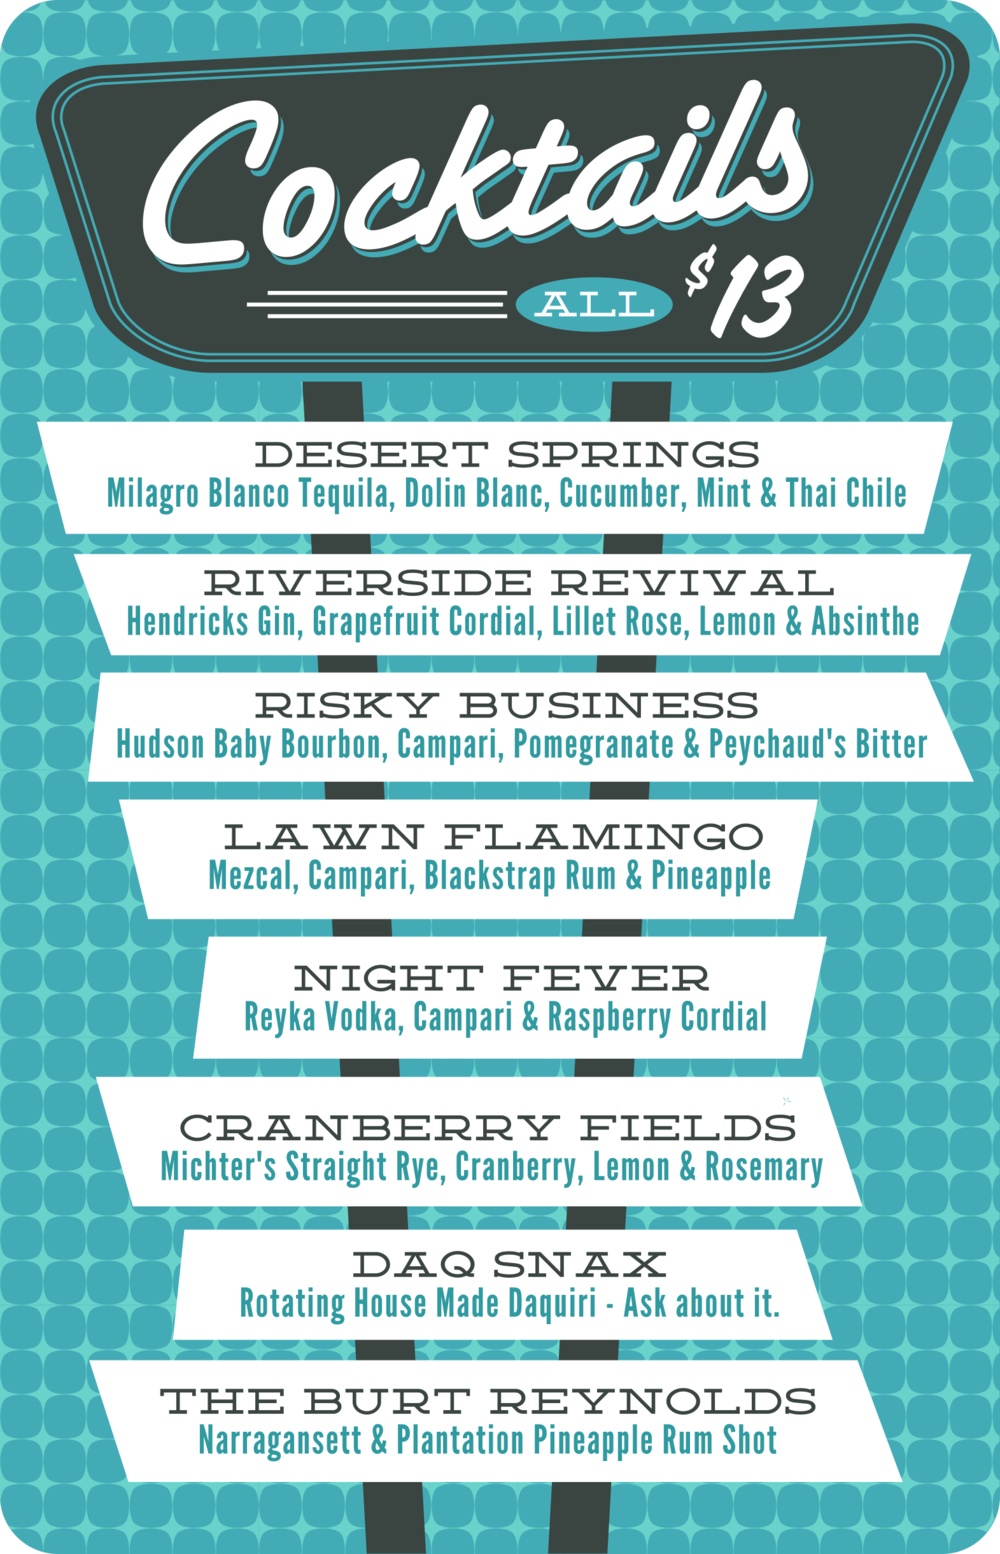 The Springs_Menu_Cocktails.png